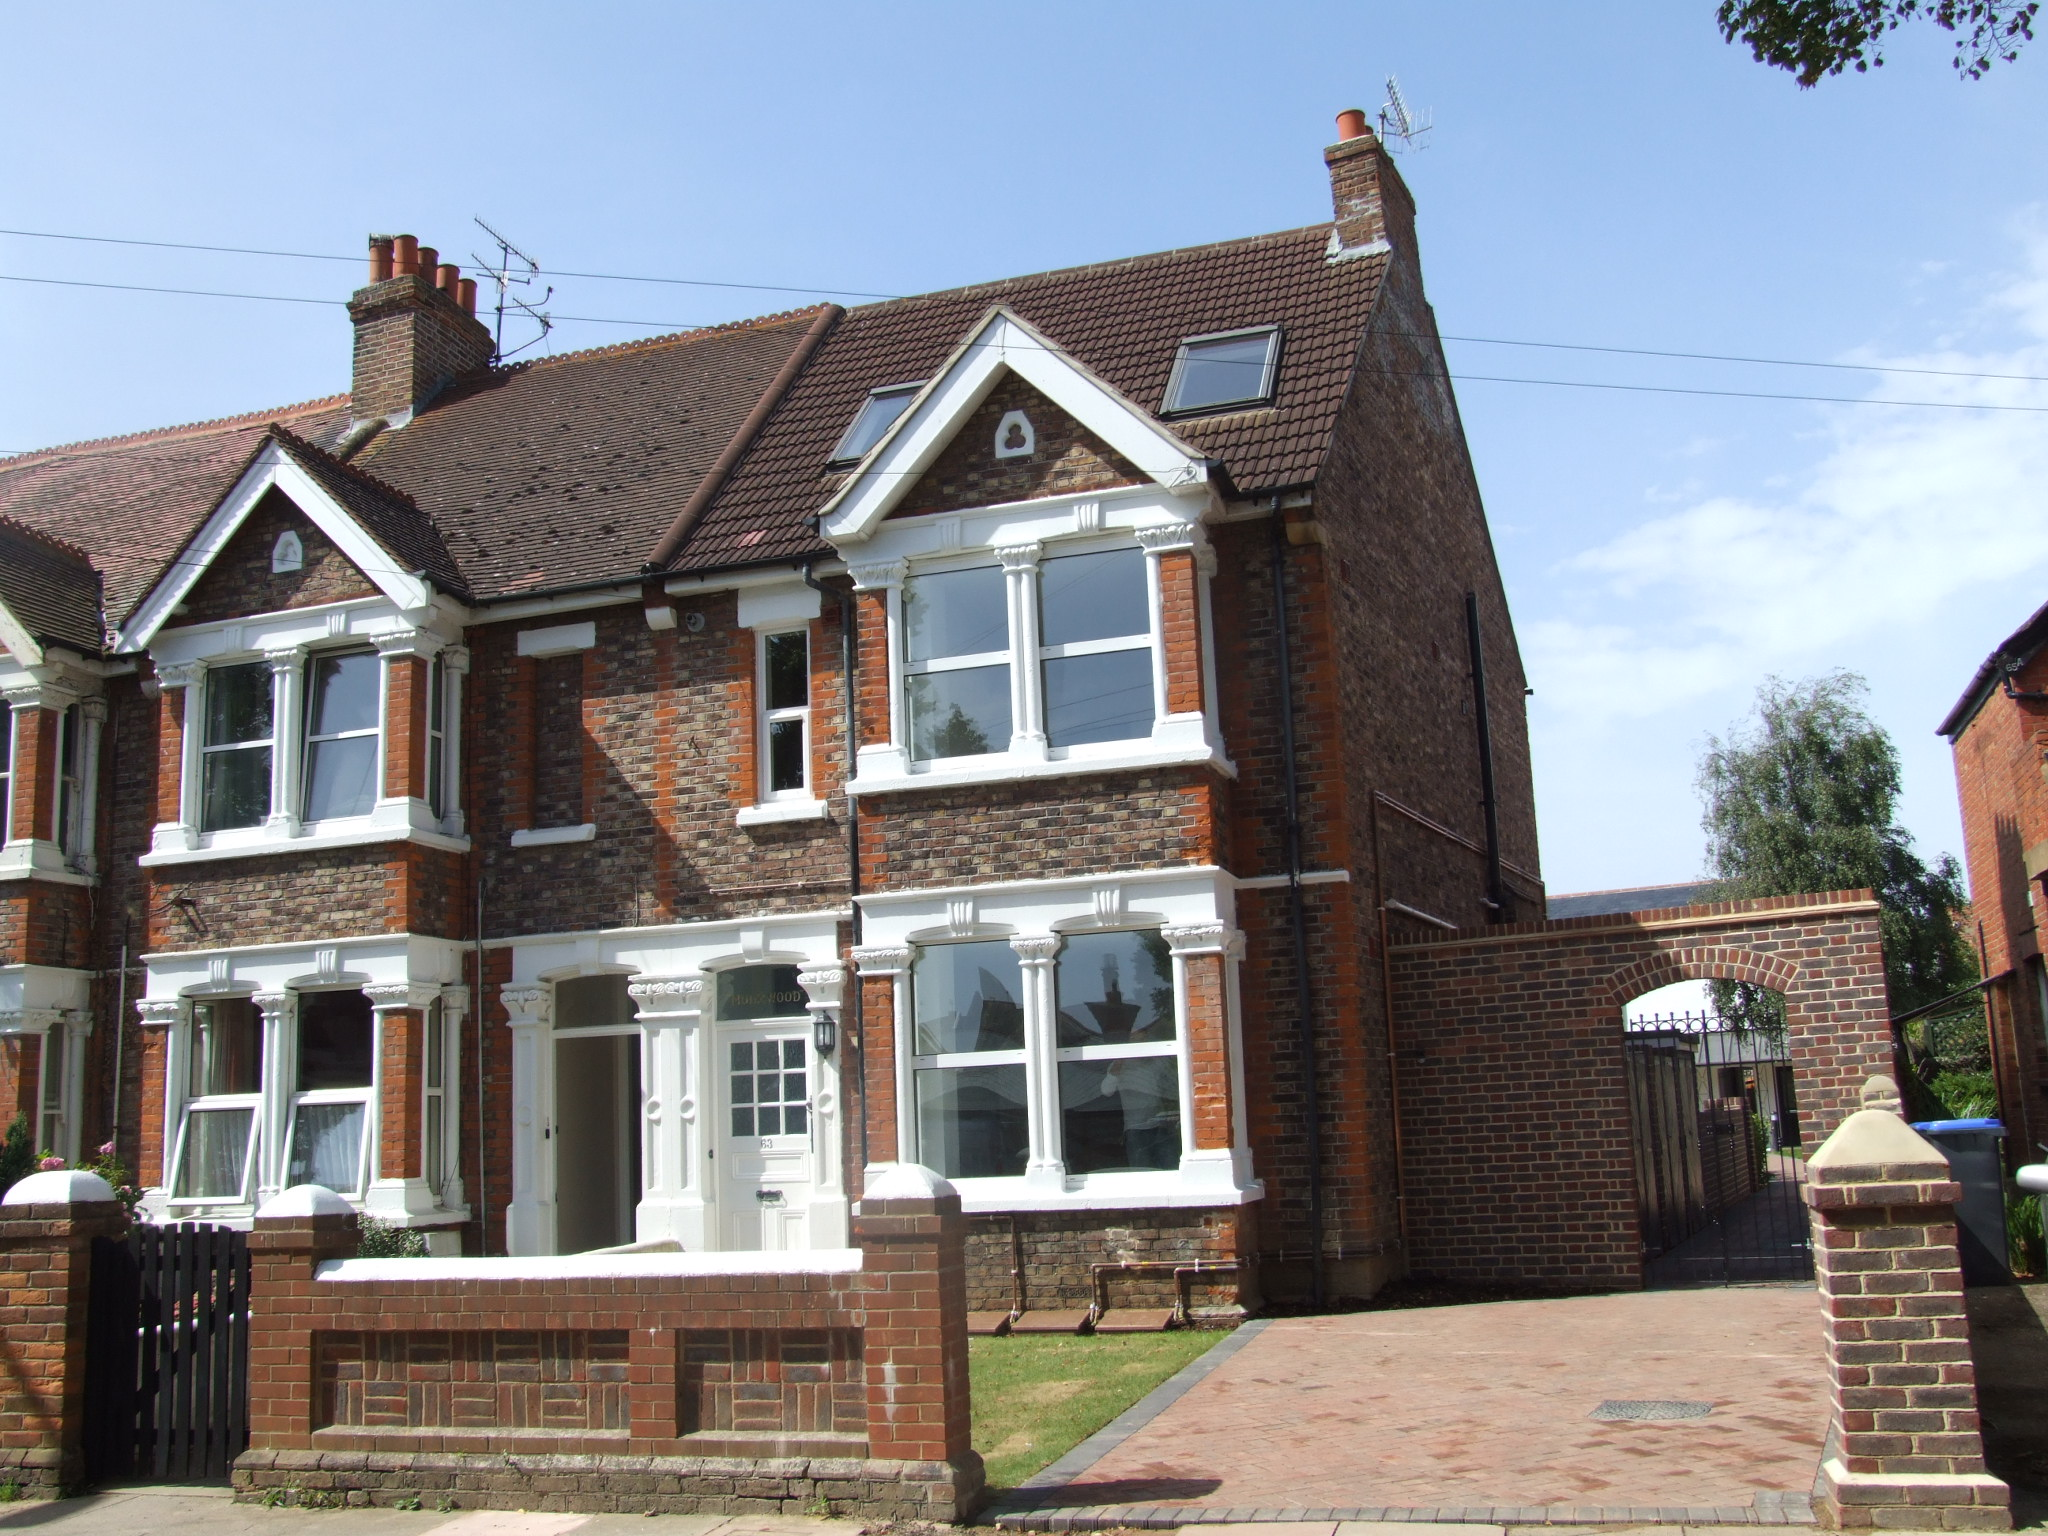 A former semi-detached house converted into 5 flats